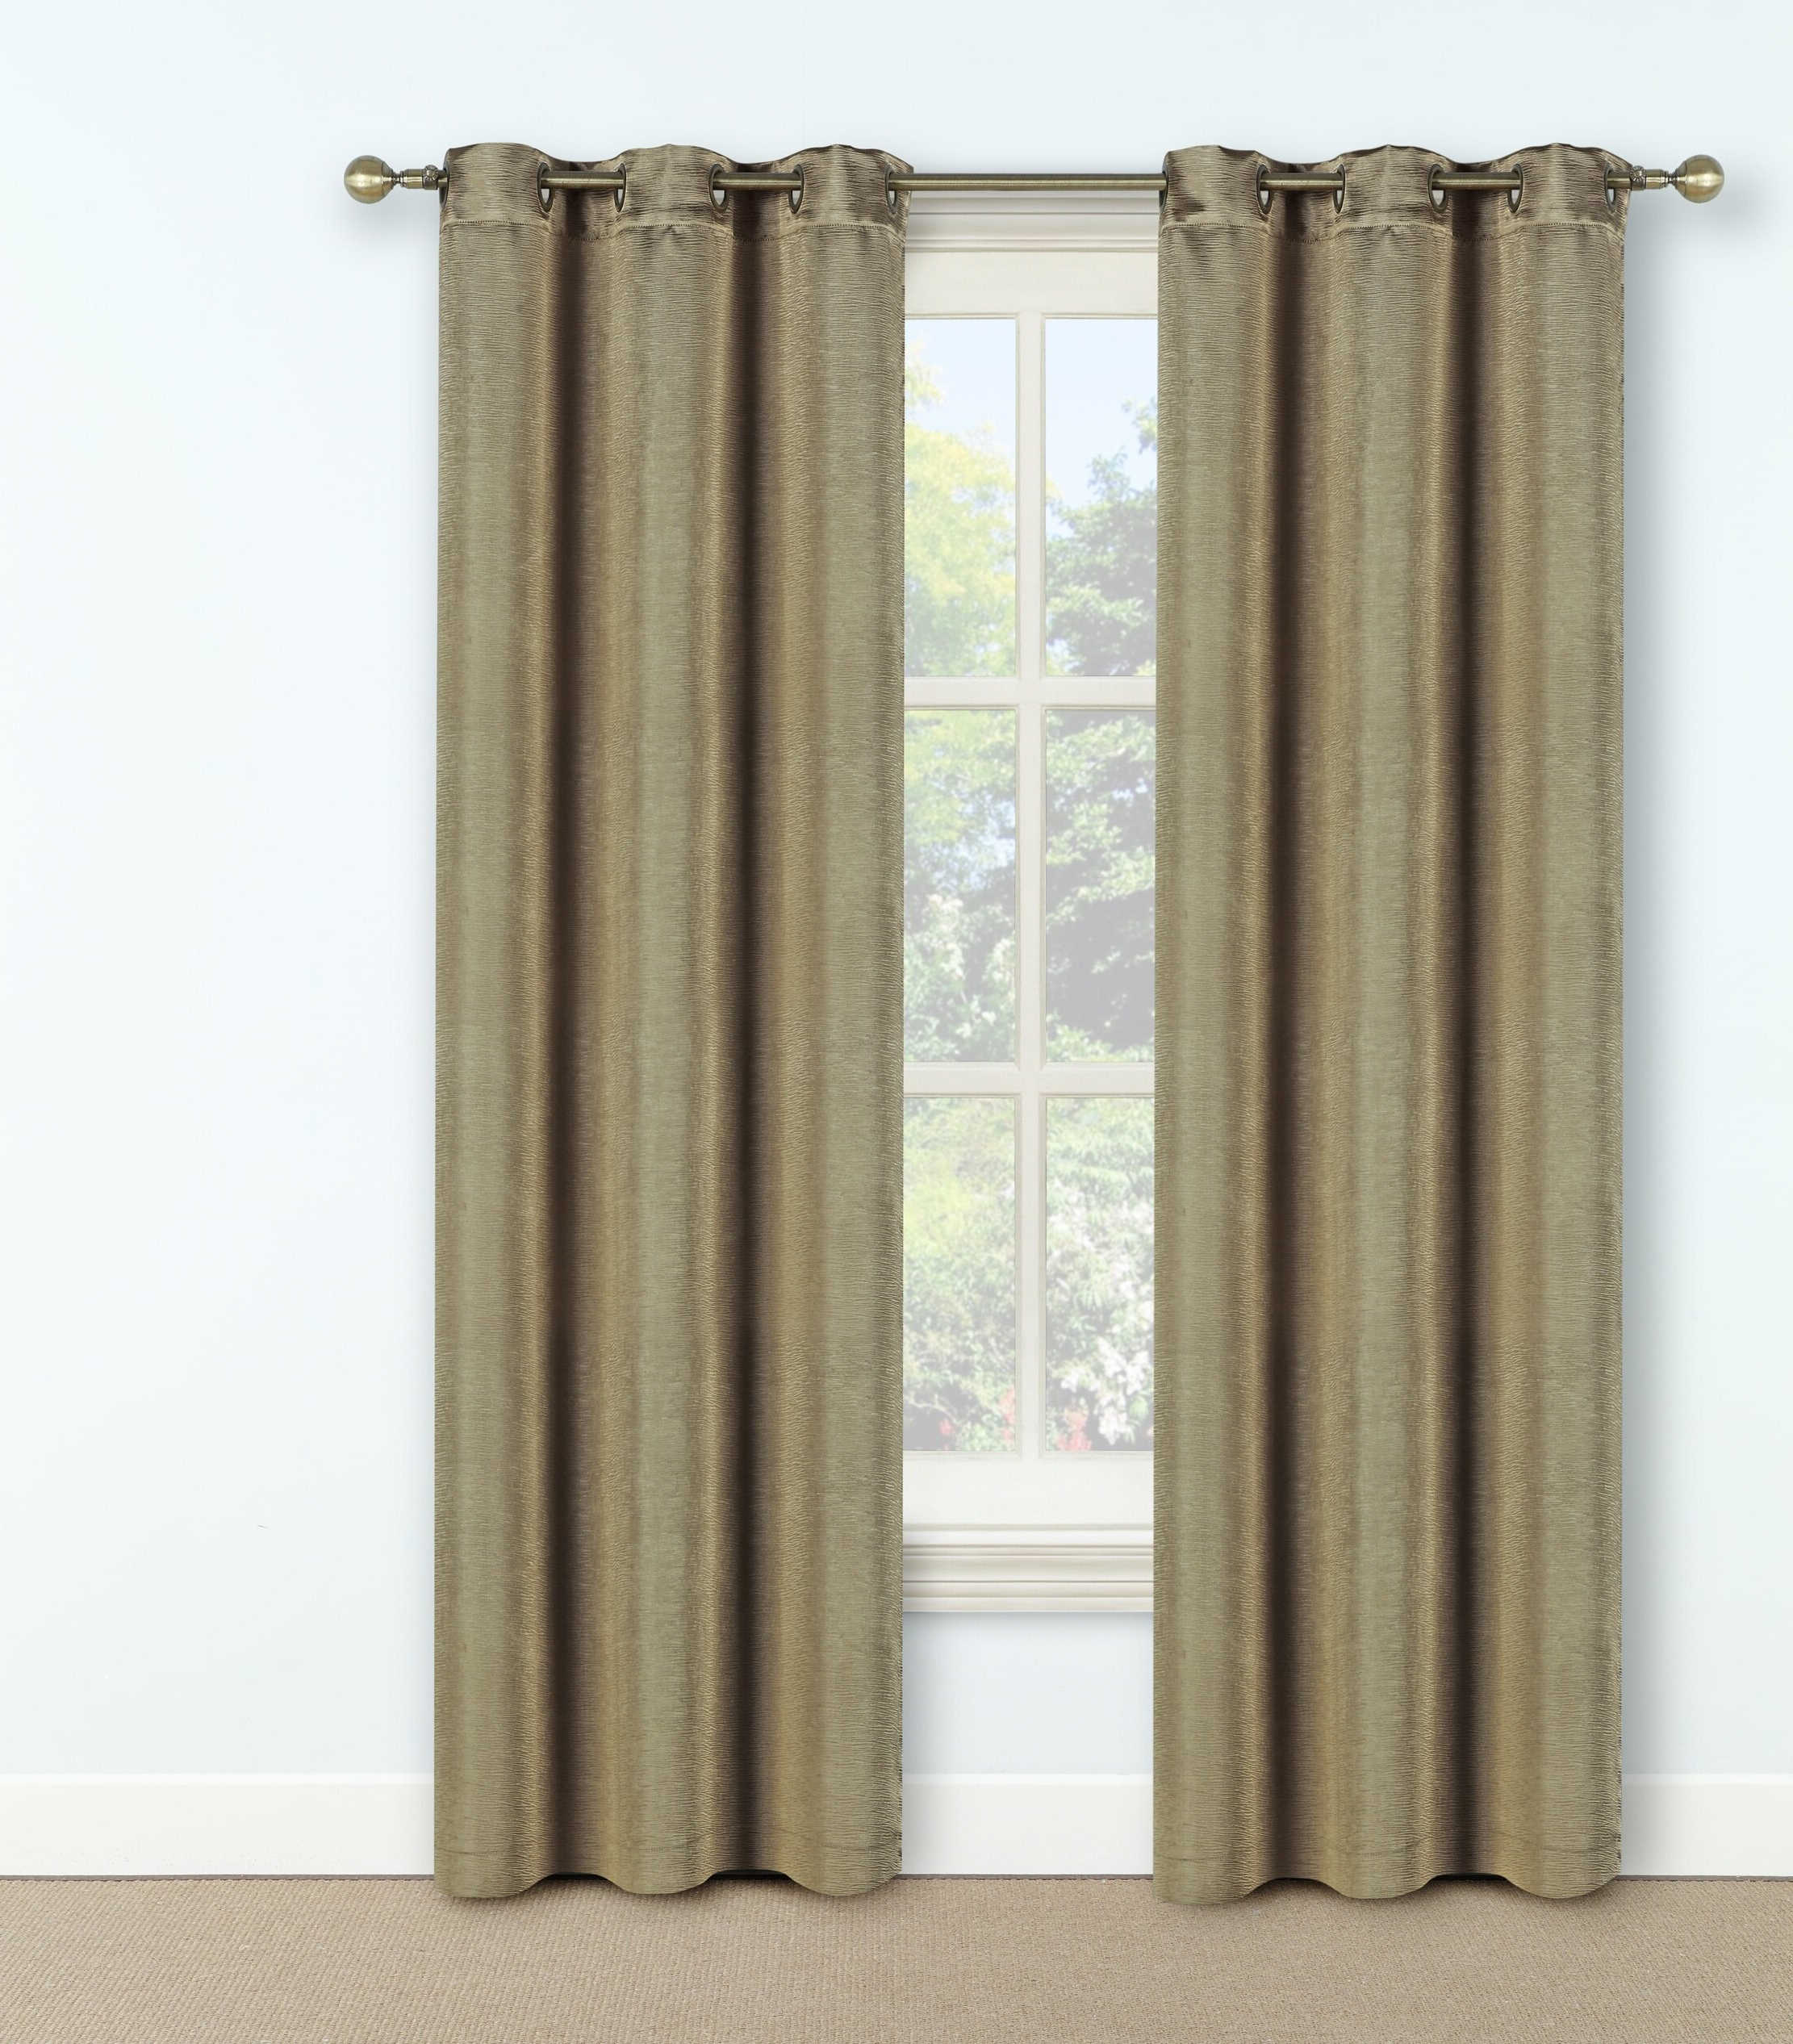 Steubenville Solid Max Blackout Thermal Grommet Single Curtain Panel Intended For Most Recent Luxury Collection Faux Leather Blackout Single Curtain Panels (View 18 of 20)